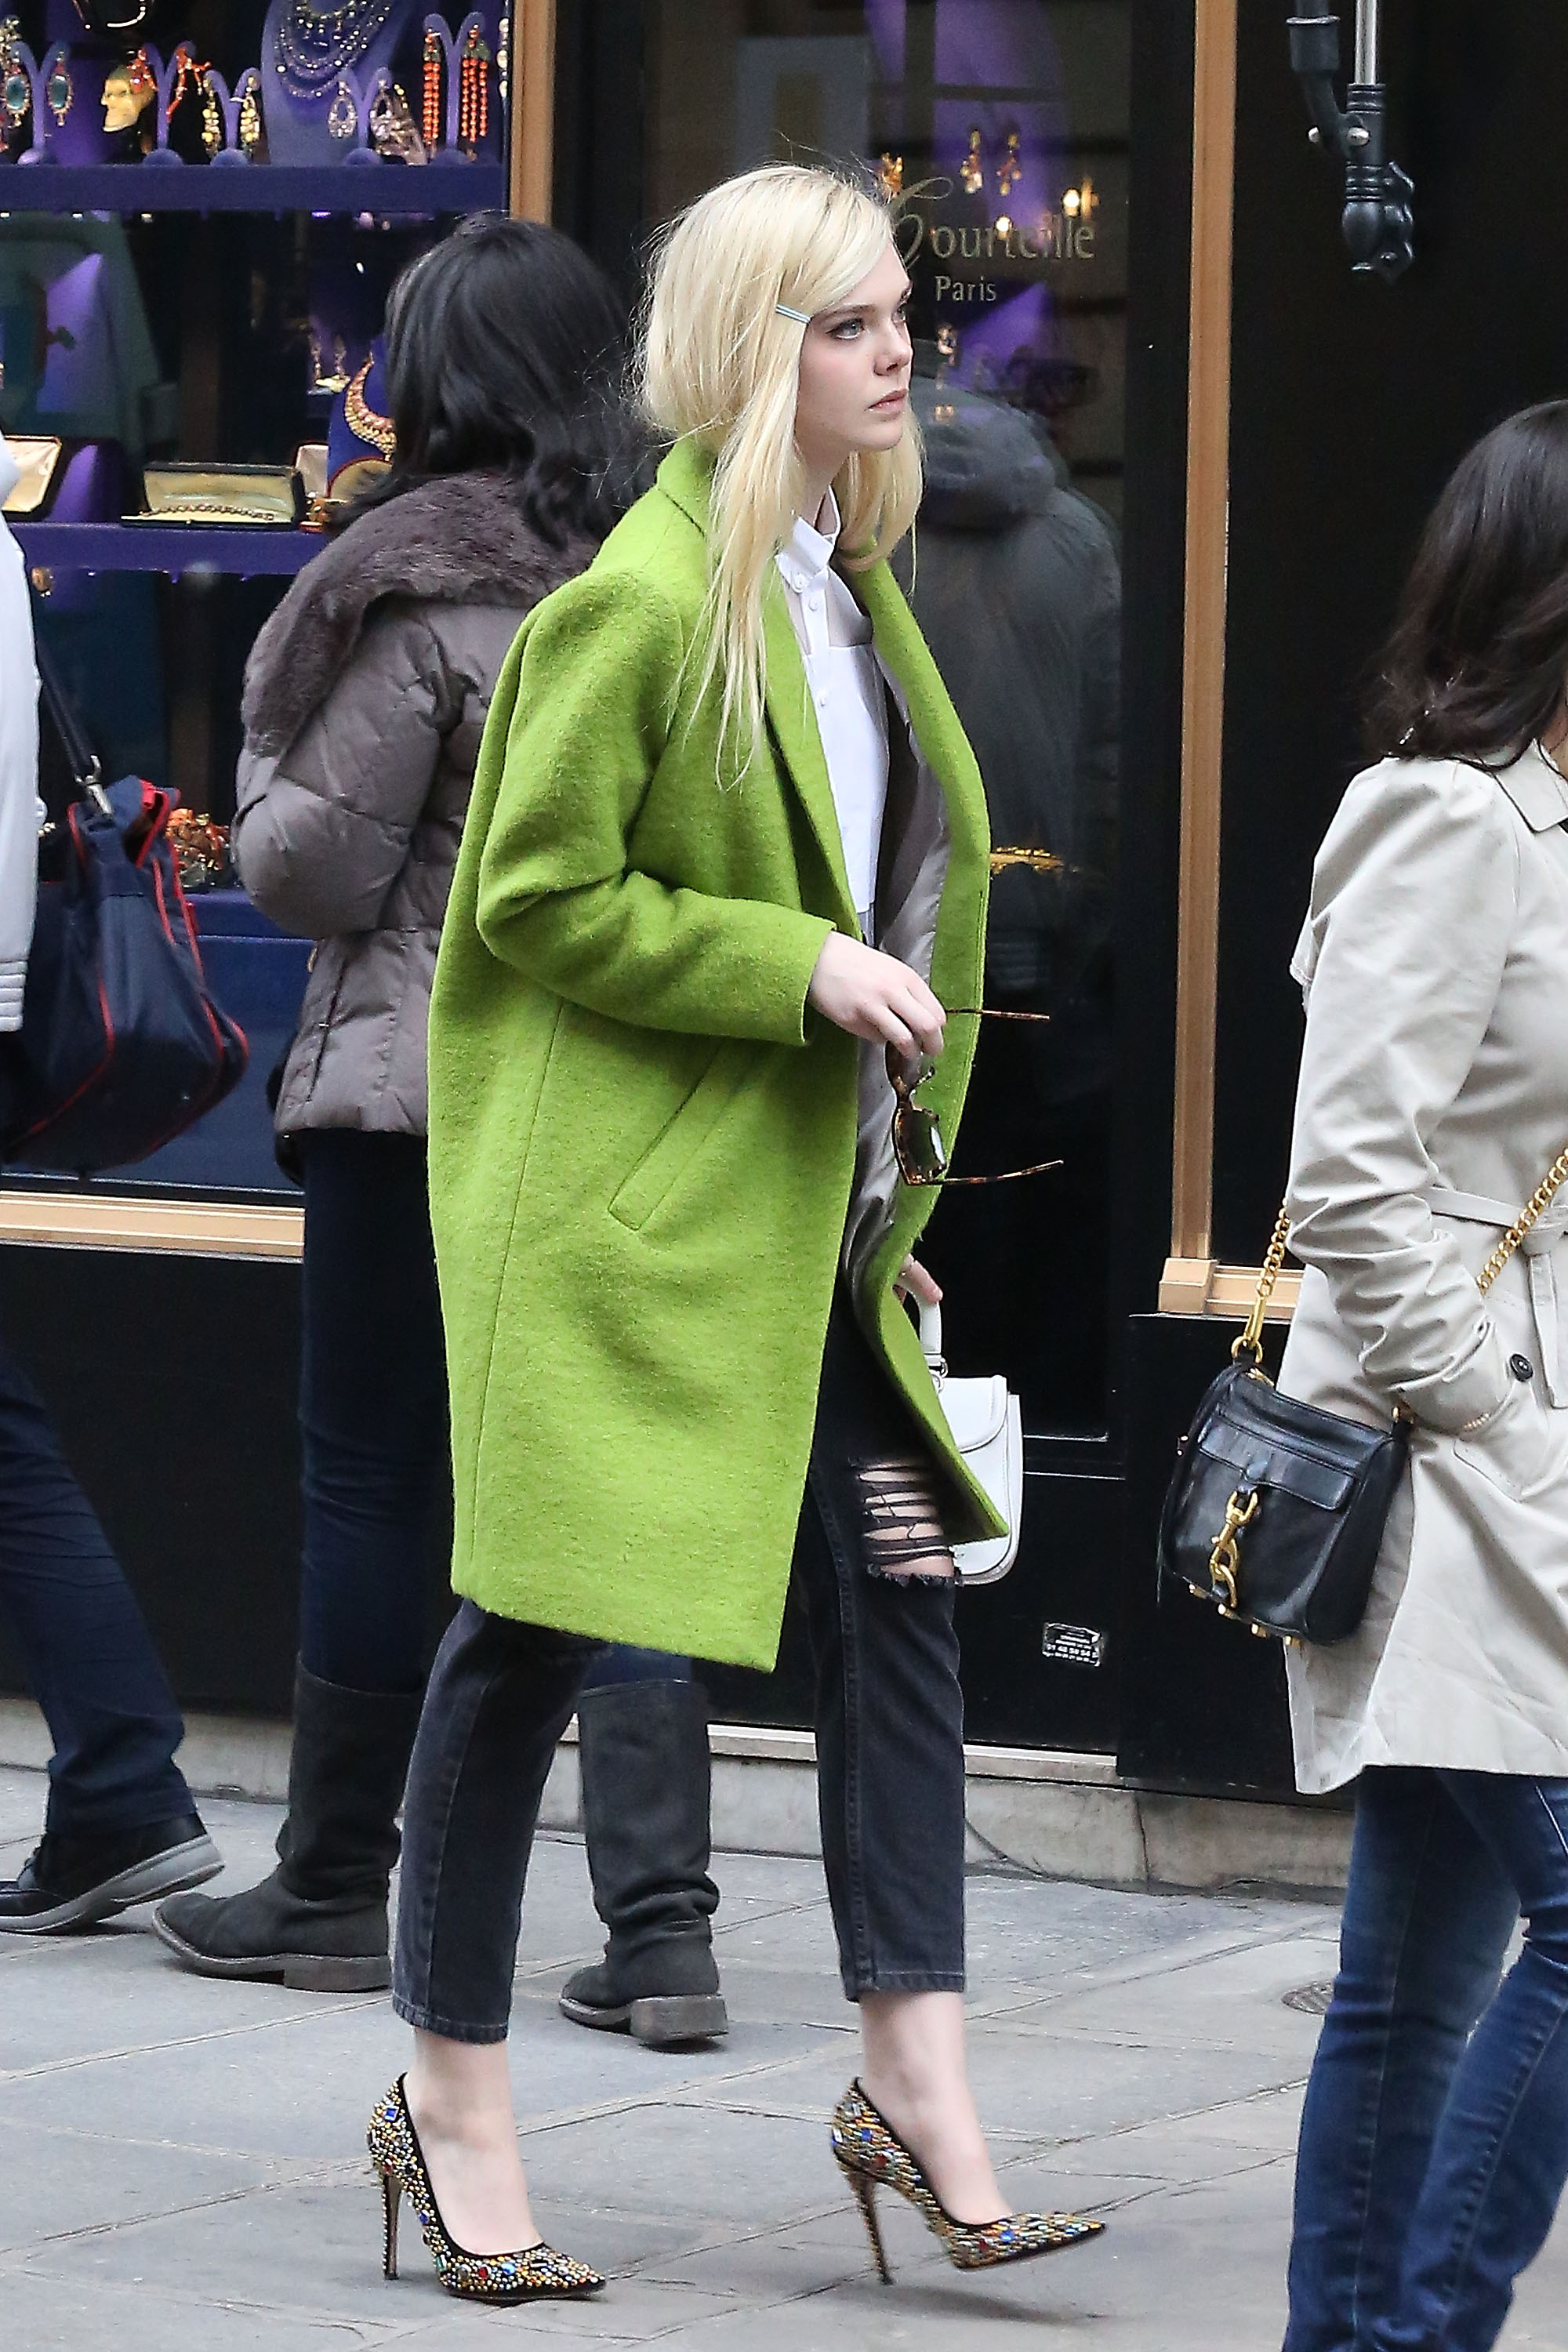 Elle Fanning Sighting In Paris